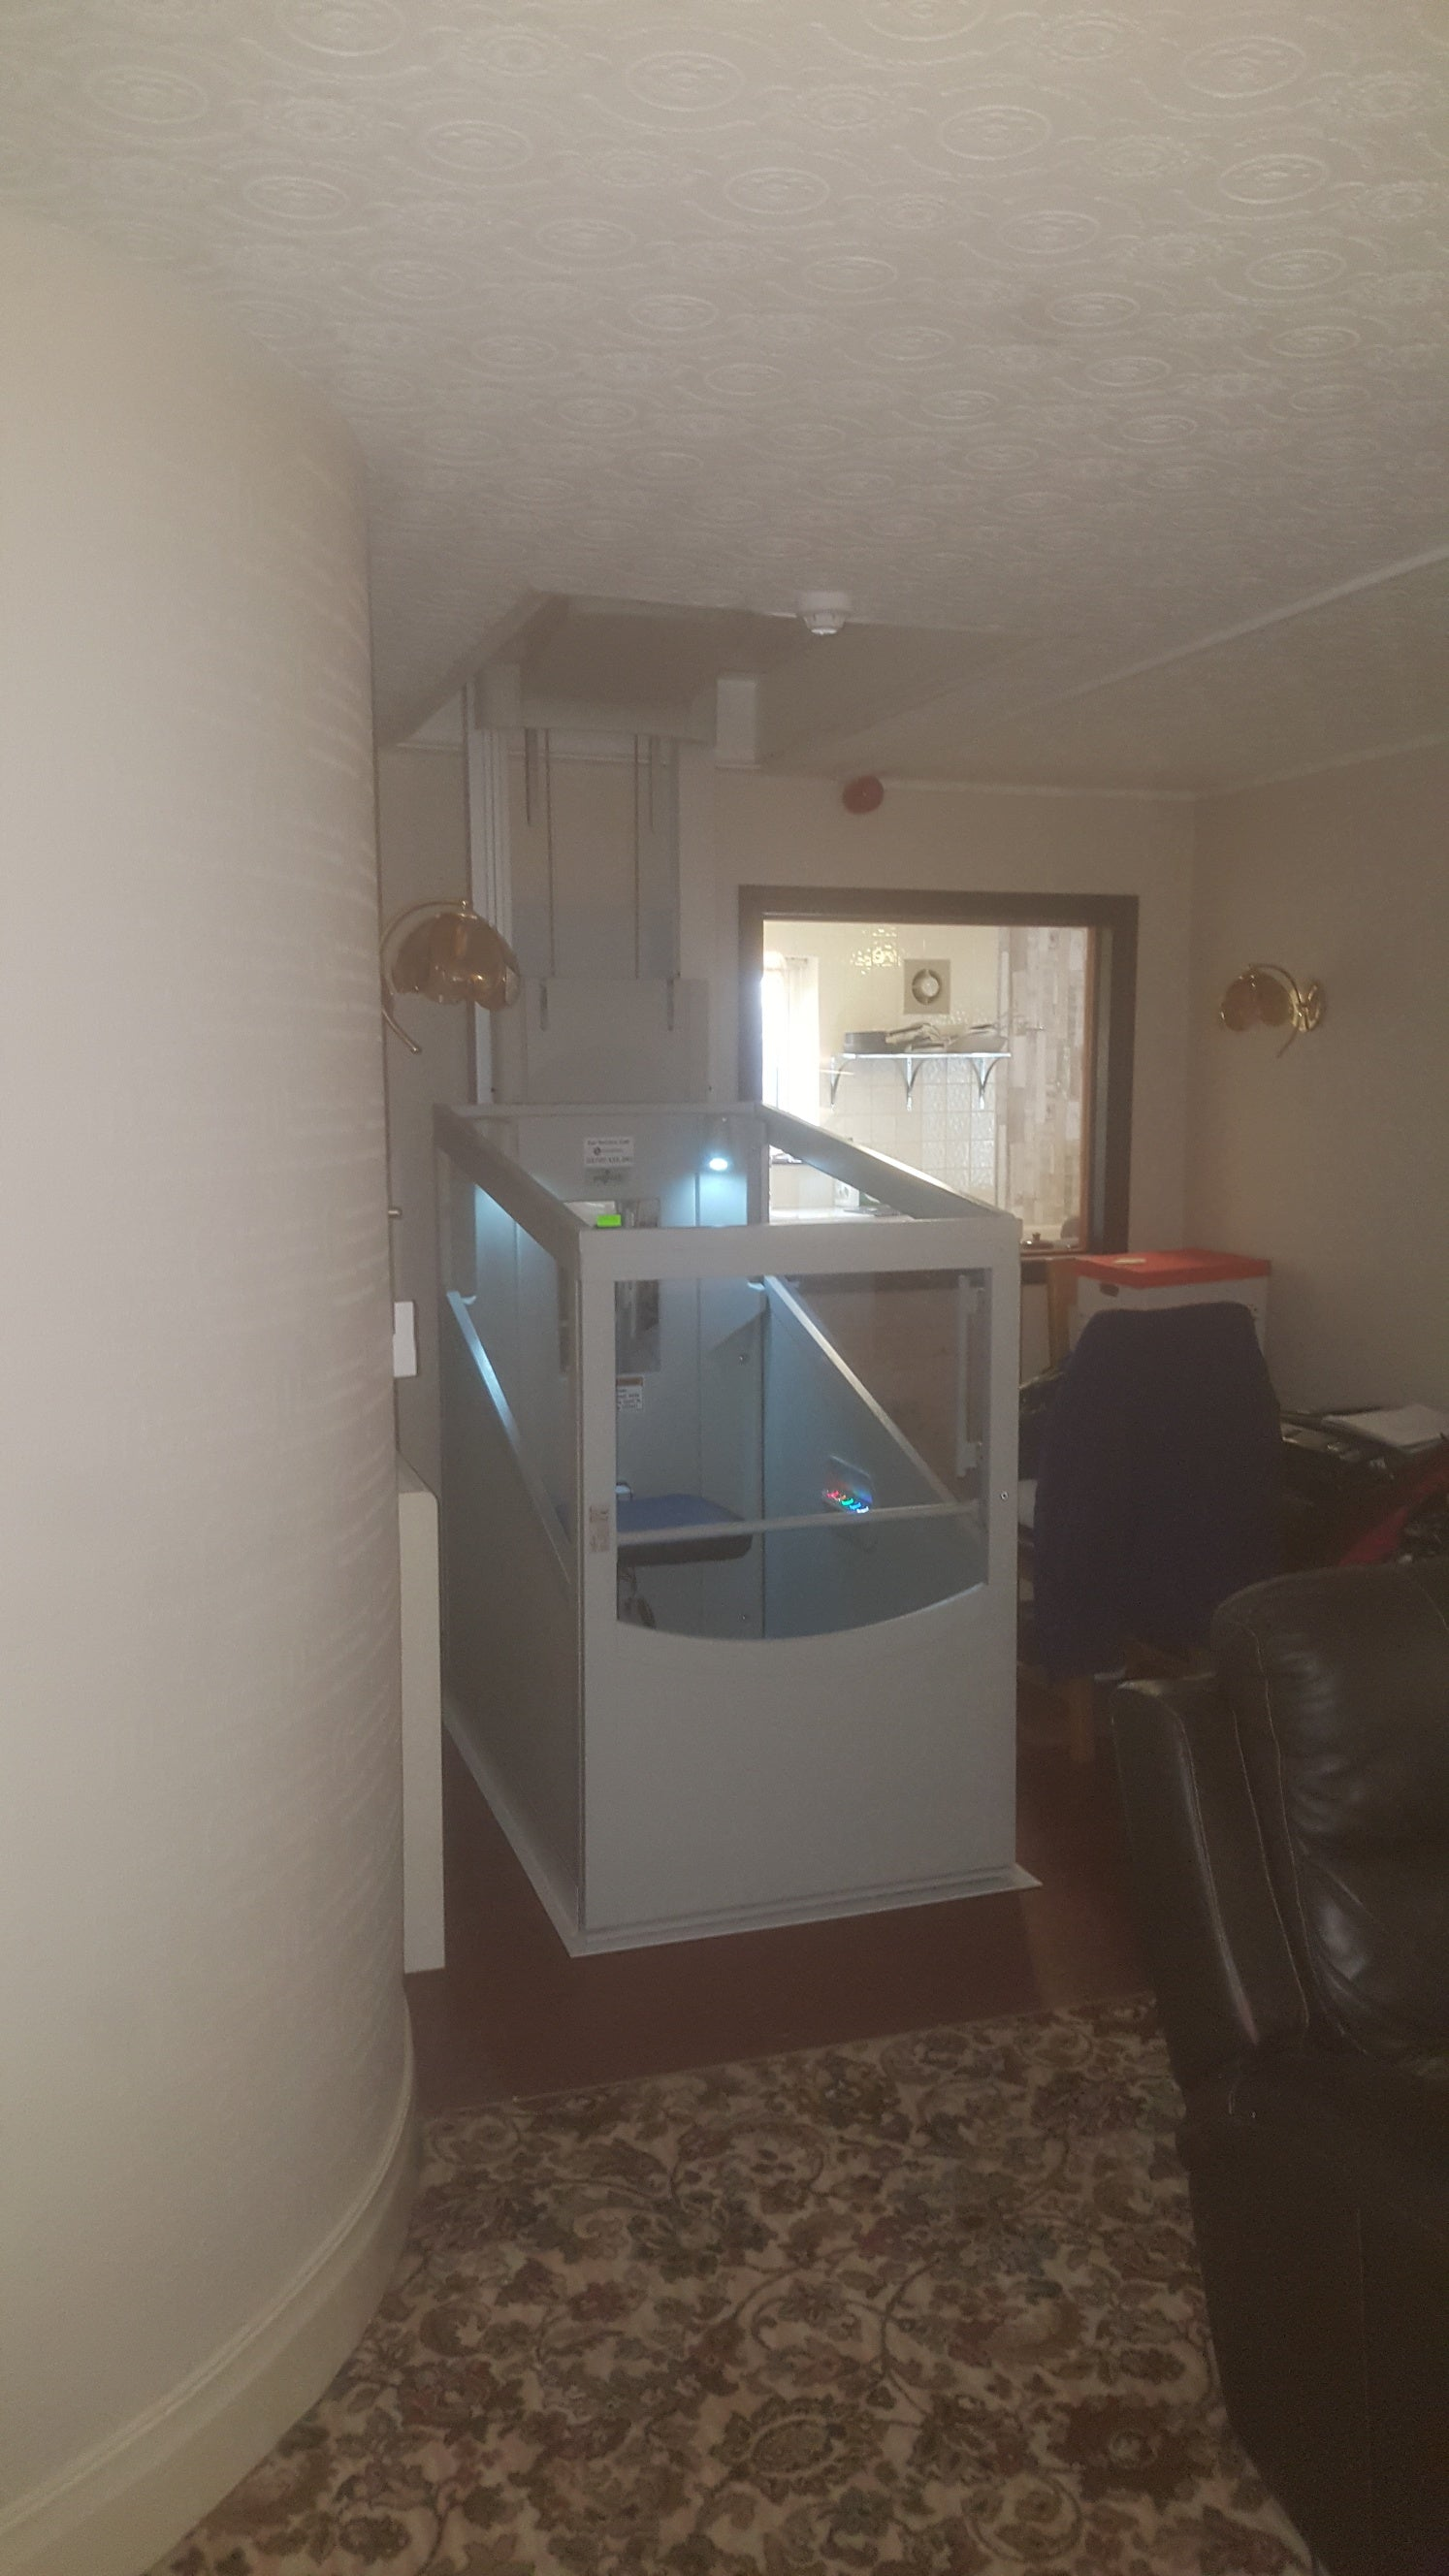 Pollock Through Floor Lift Install, Supported Living Accommodation, Blackburn.